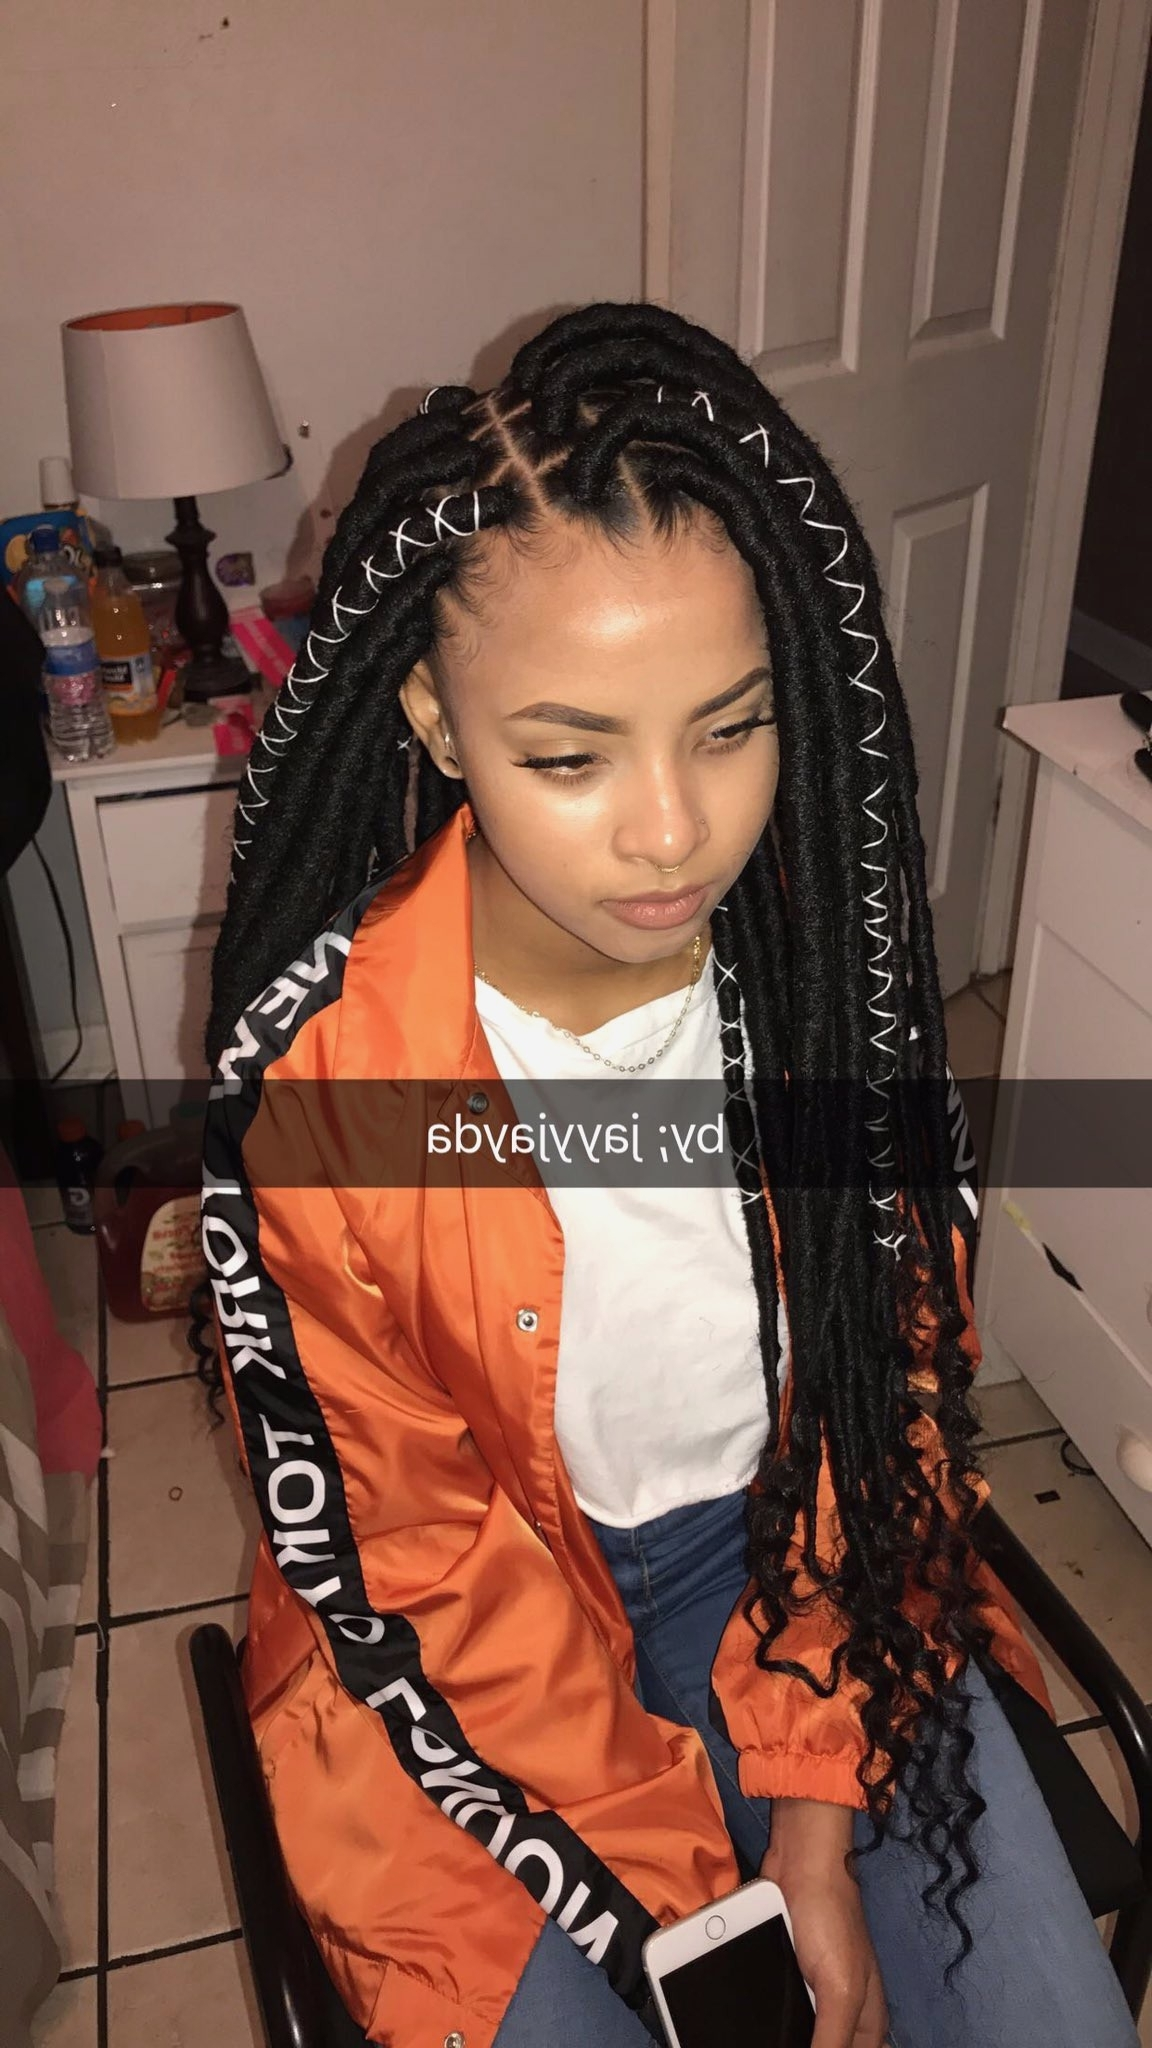 Black Hairstyles For Prom Mens Hair Bob With Bangs Braids Regarding Fashionable Cornrows Prom Hairstyles (View 15 of 15)